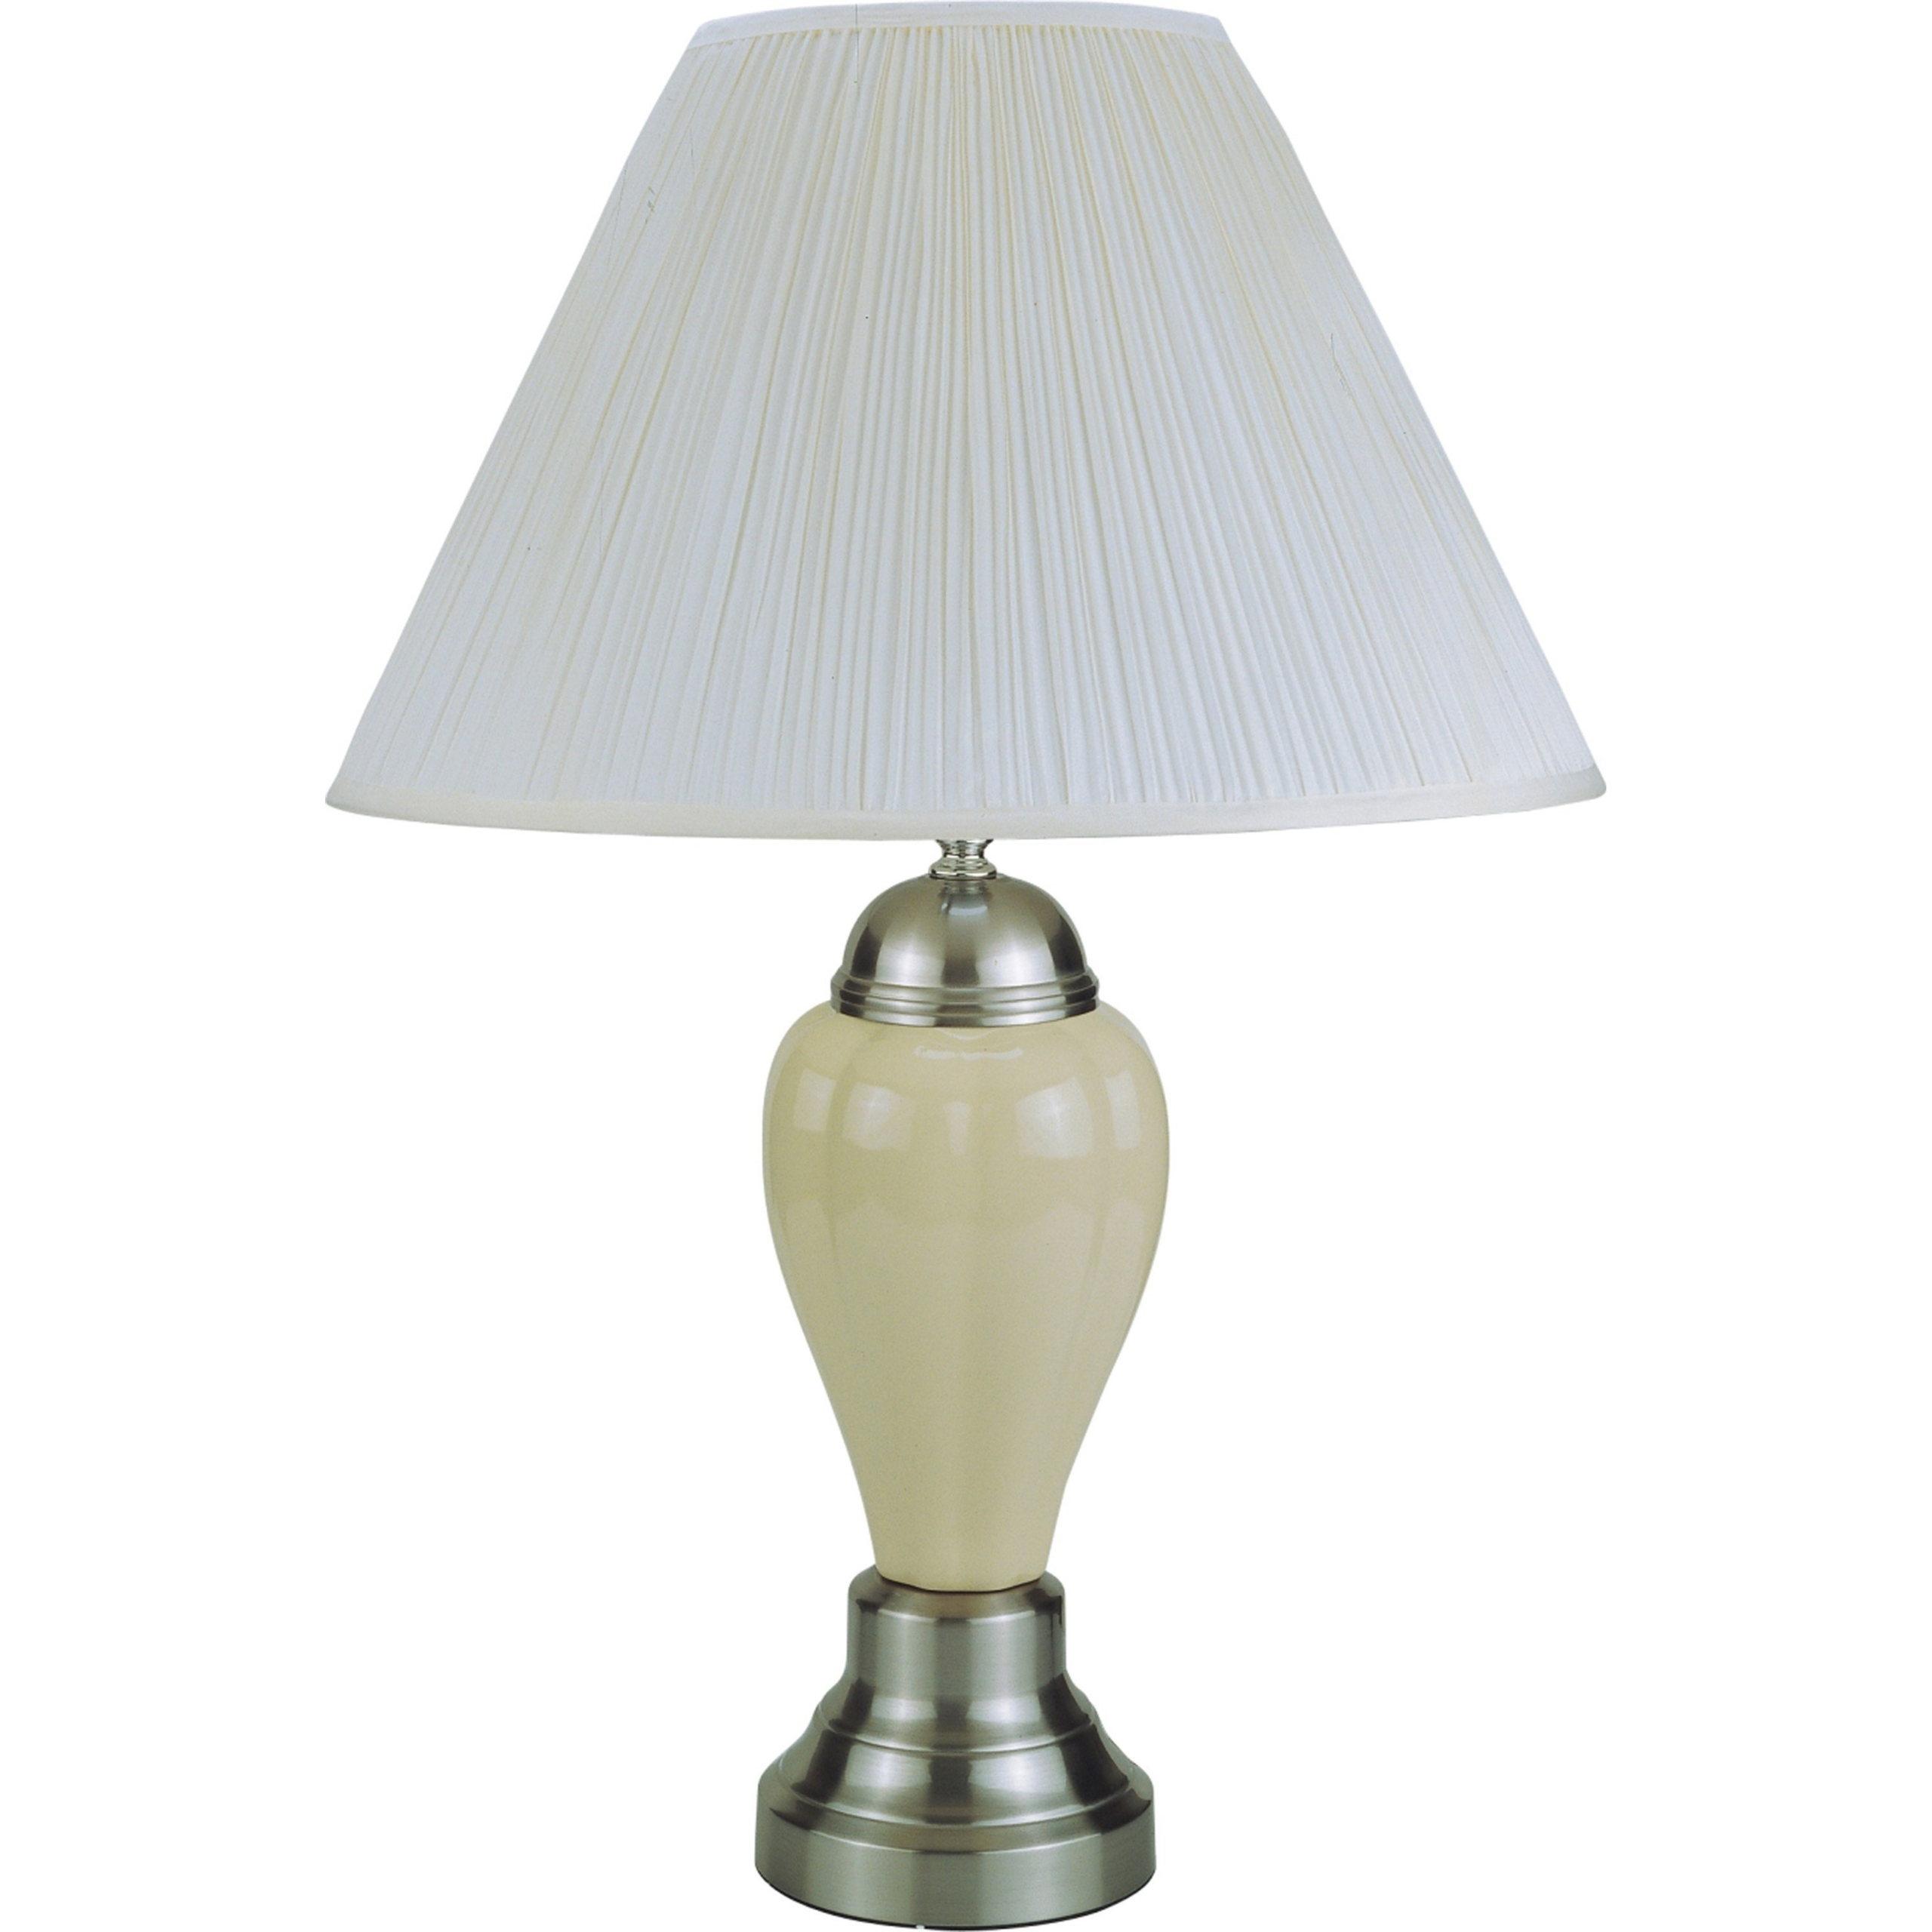 "Ceramic 27"" H Table Lamp with Empire Shade"